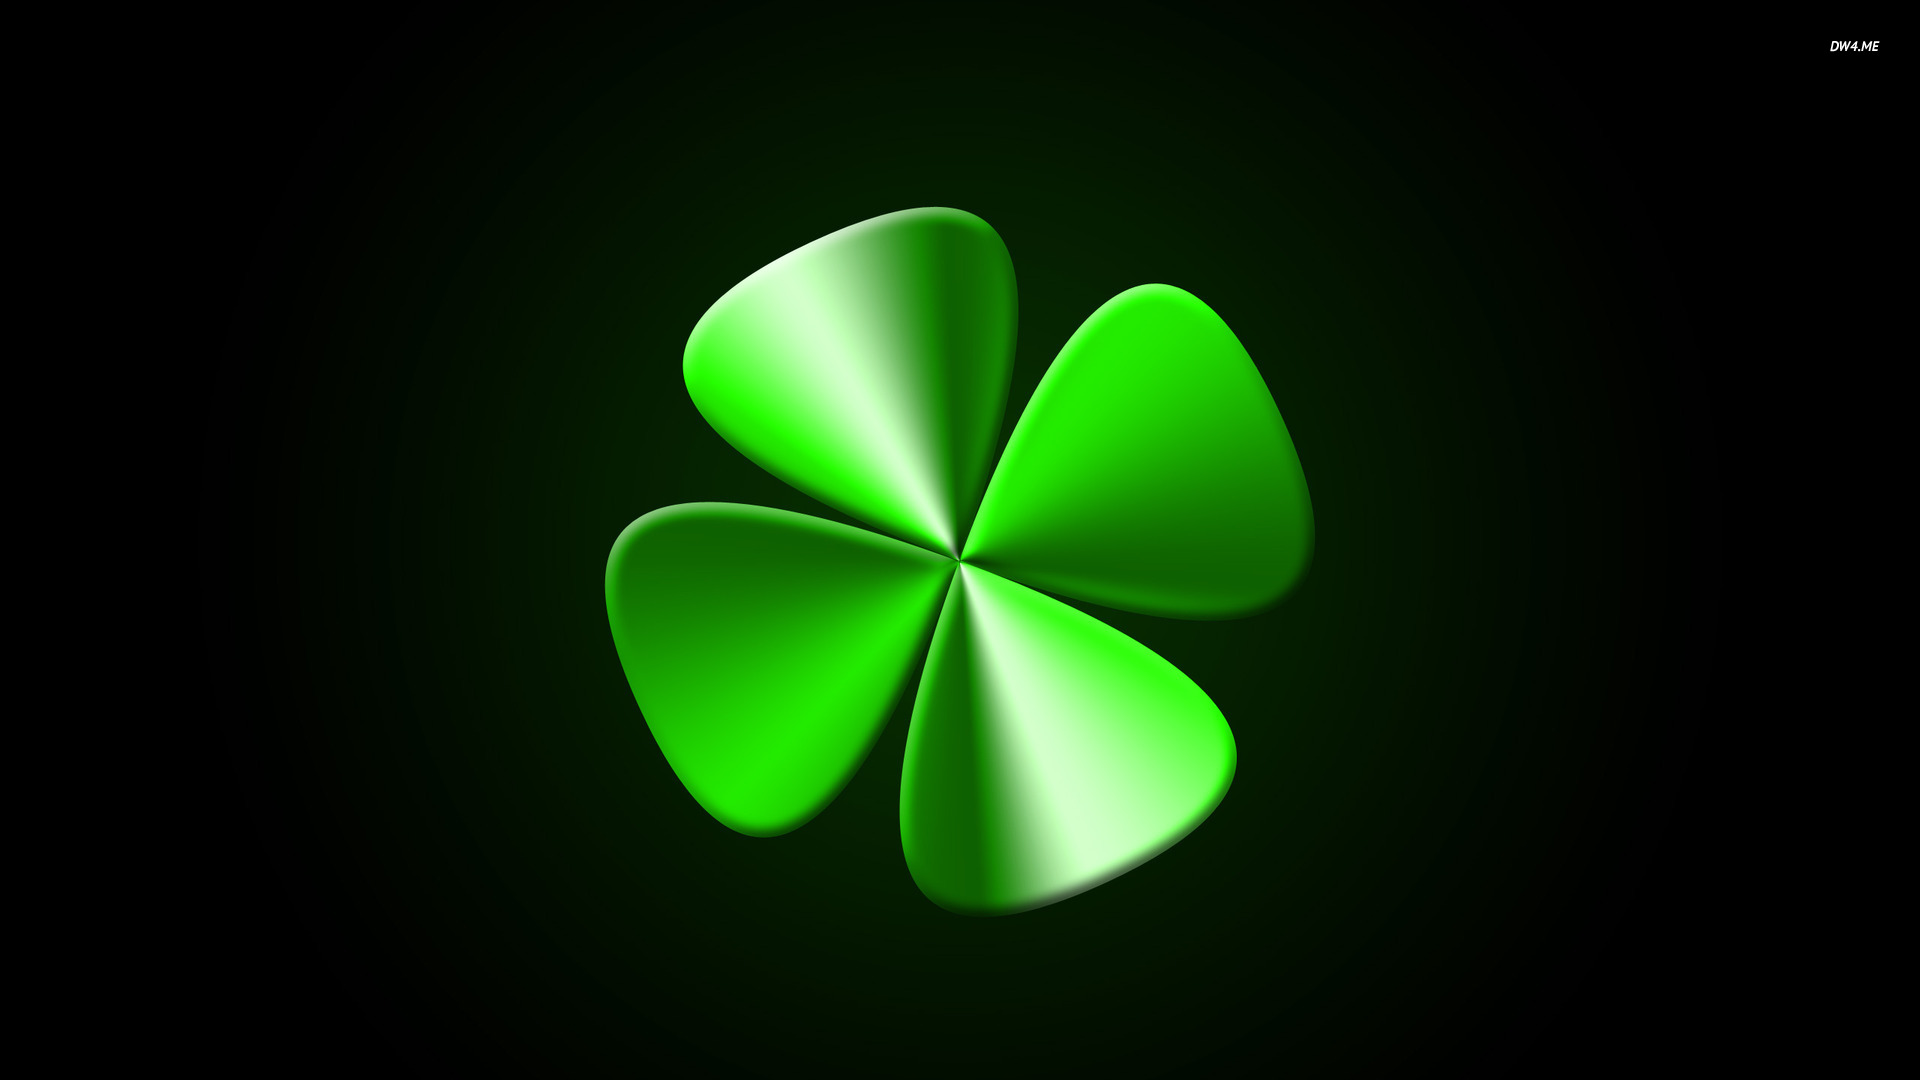 Four-Leaf-Clover-Like-Flowers-four-leaf-clover-1920x1080-digital-art-wallpaper-wpc9005107